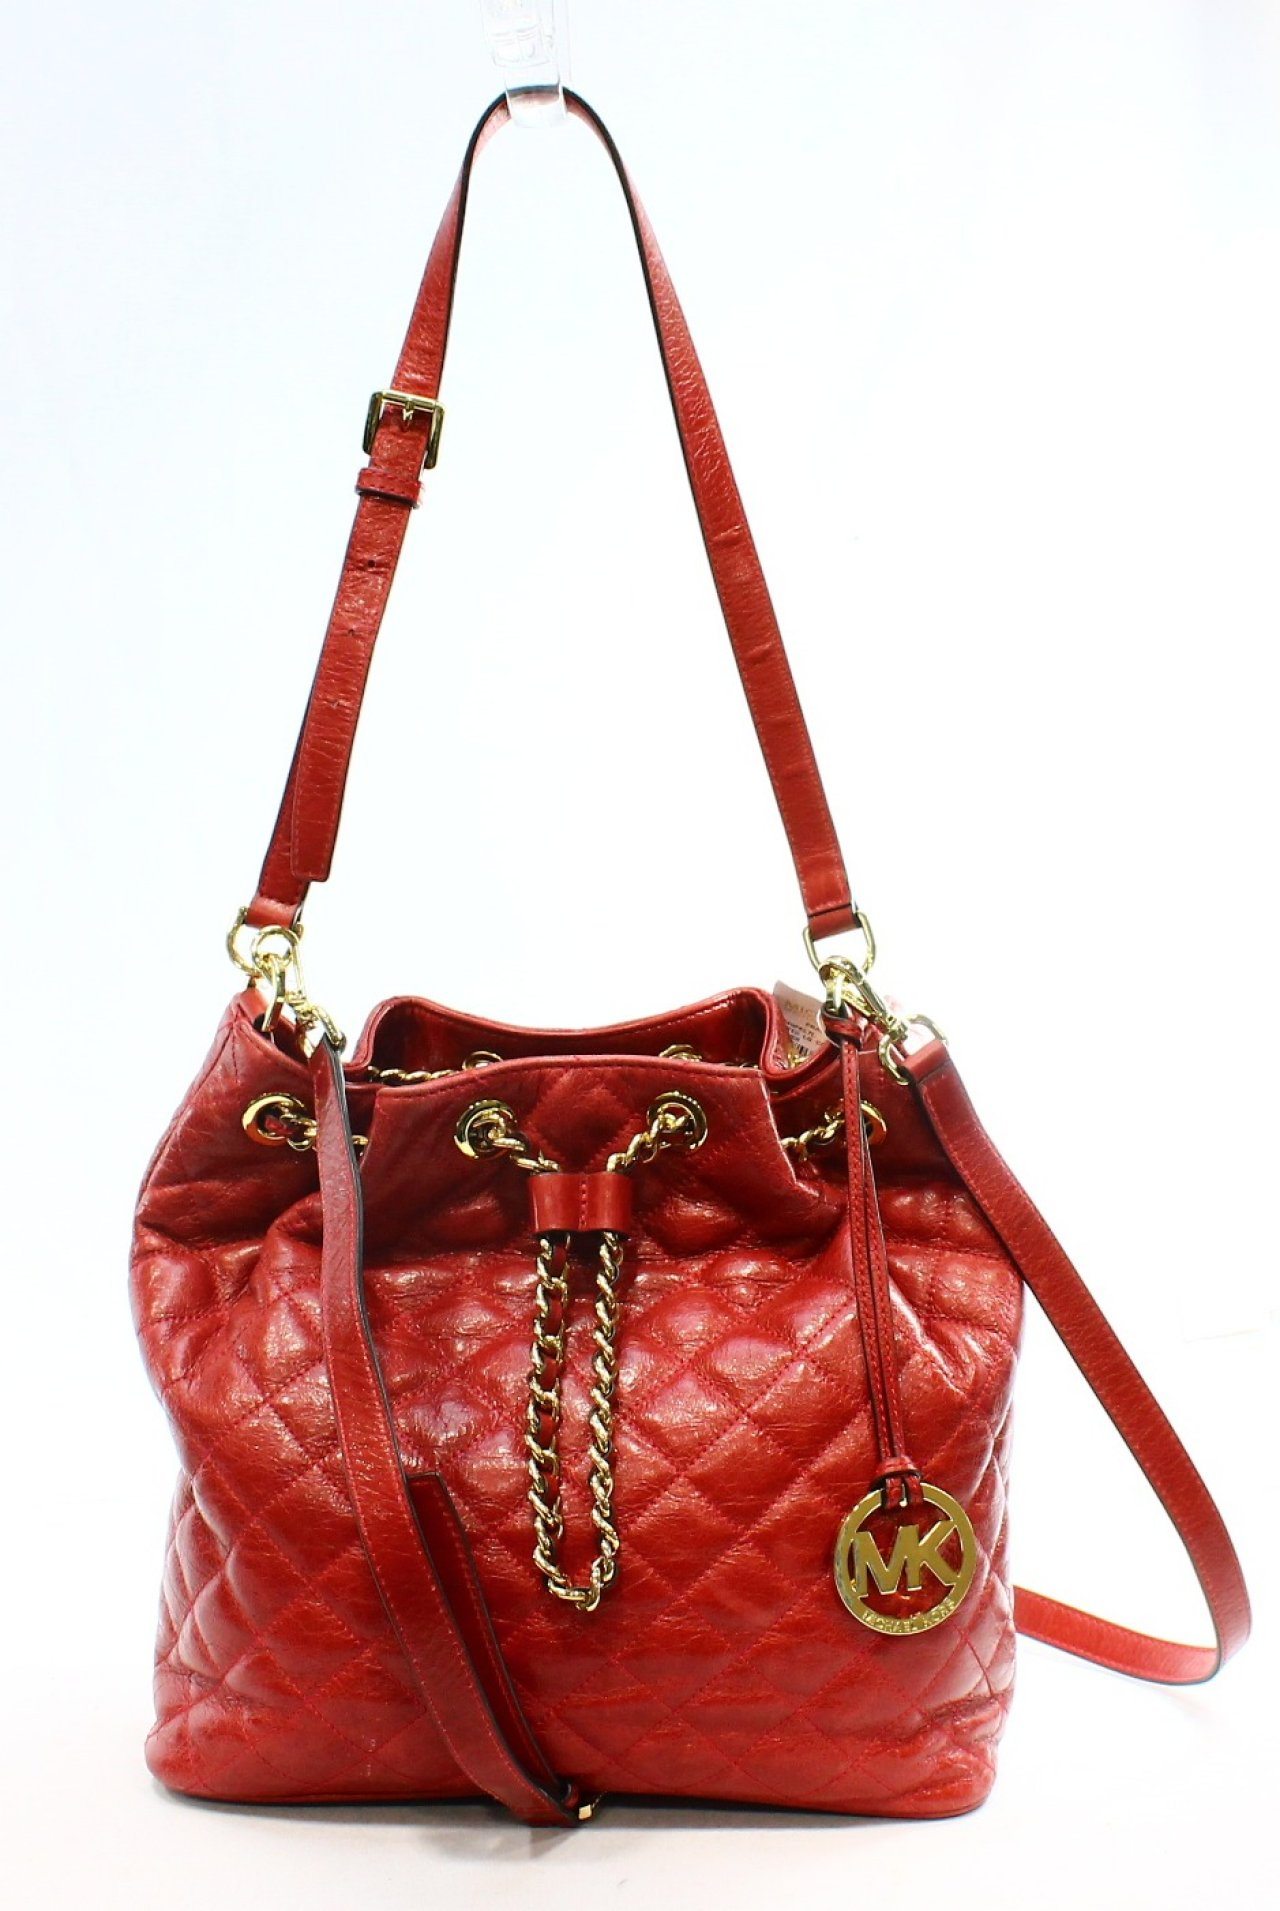 Michael Kors Dark Red Leather Quilted Frankie Large